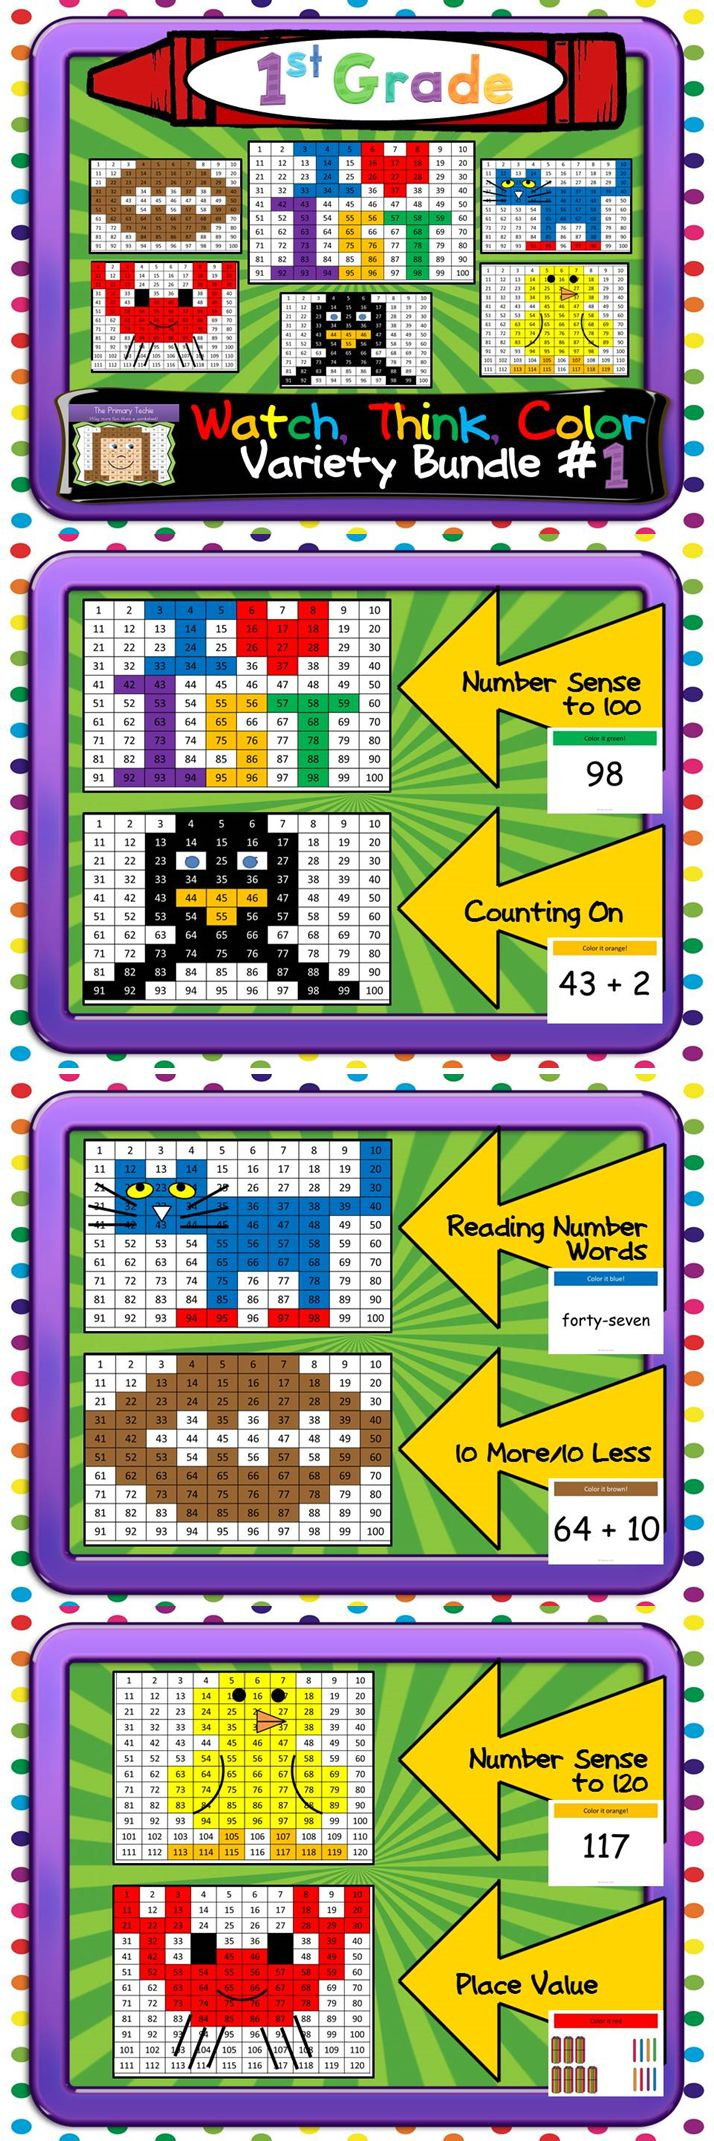 A variety of skills just right for first graders!  Using a hundreds chart, number sense to 120, counting on, place value, and more!  Each game keeps them engaged for 15-20 minutes!  $